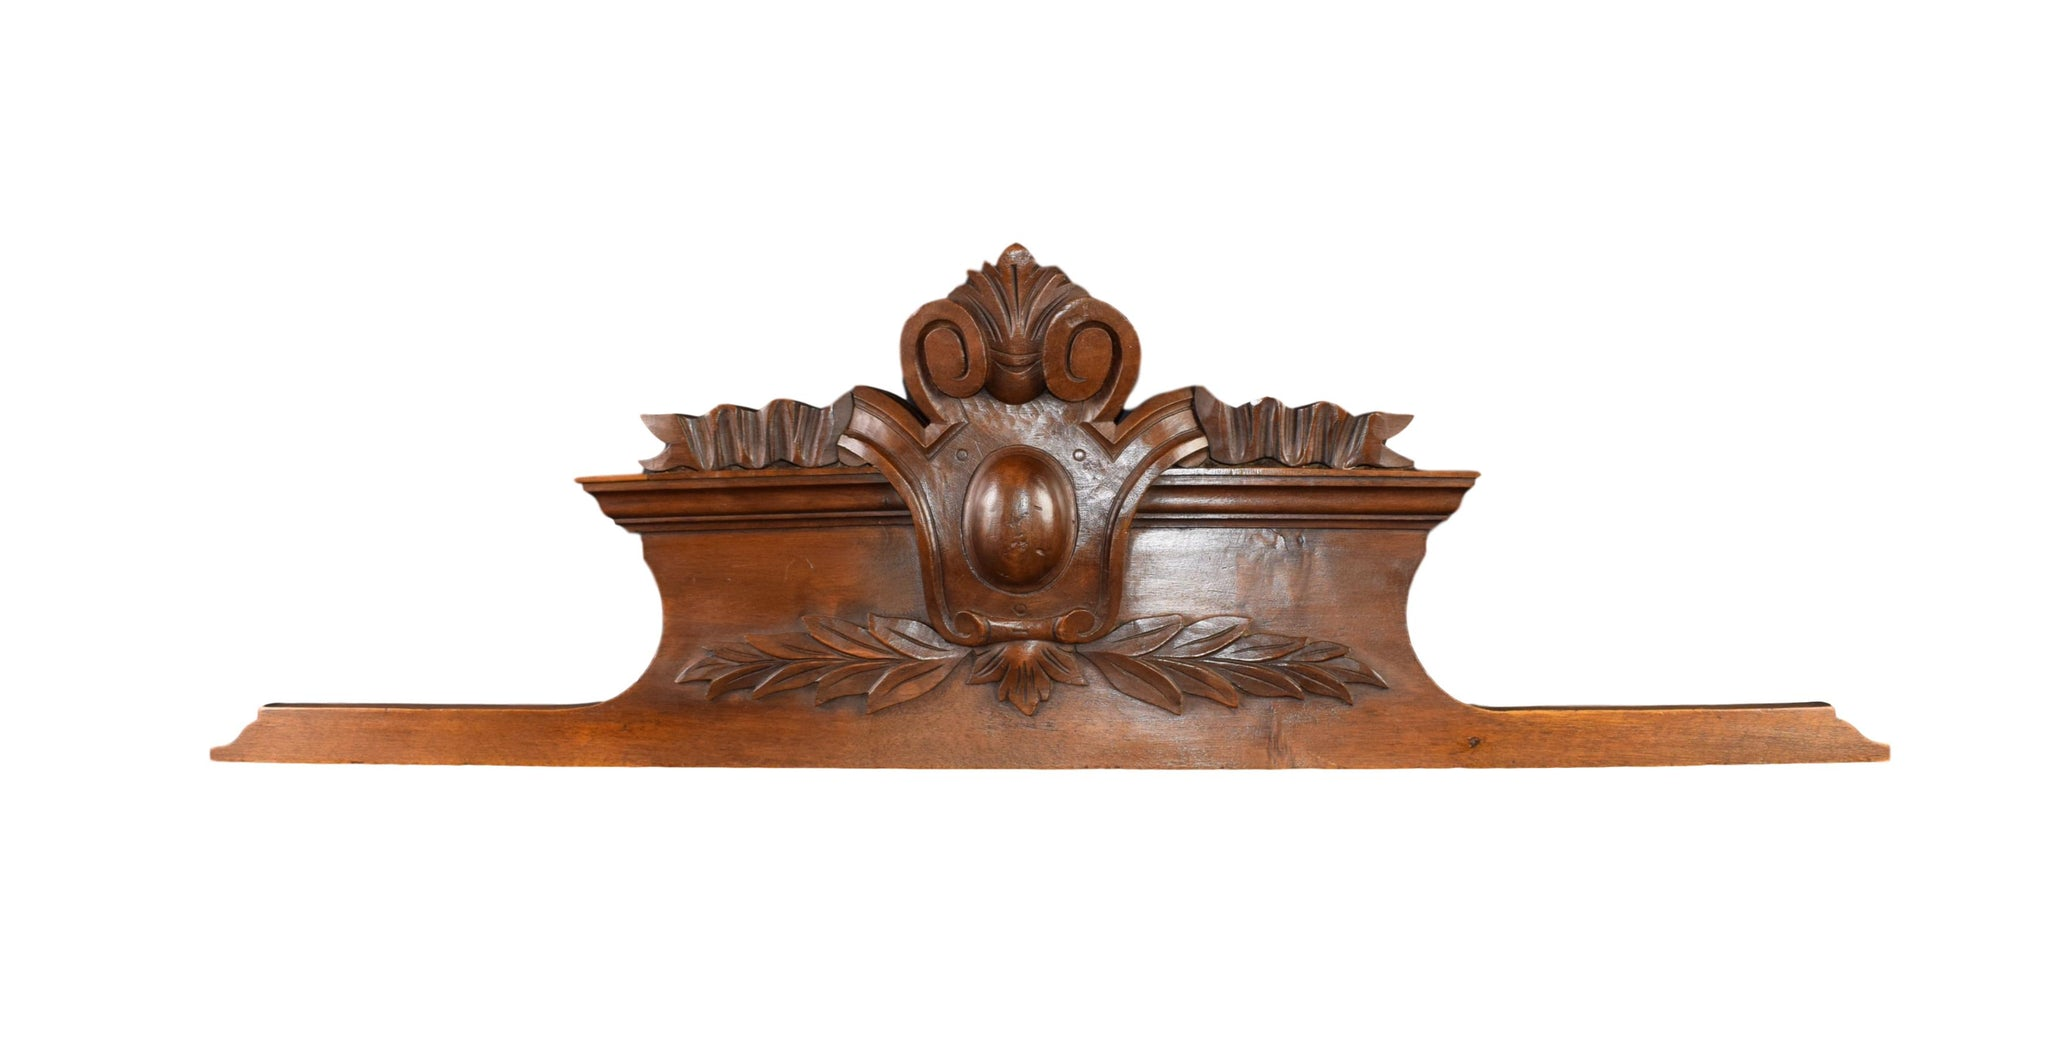 Antique French Carved Wood Pediment - Antique Architectural Salvage Furniture - Above Door Decor - Louis XVI style